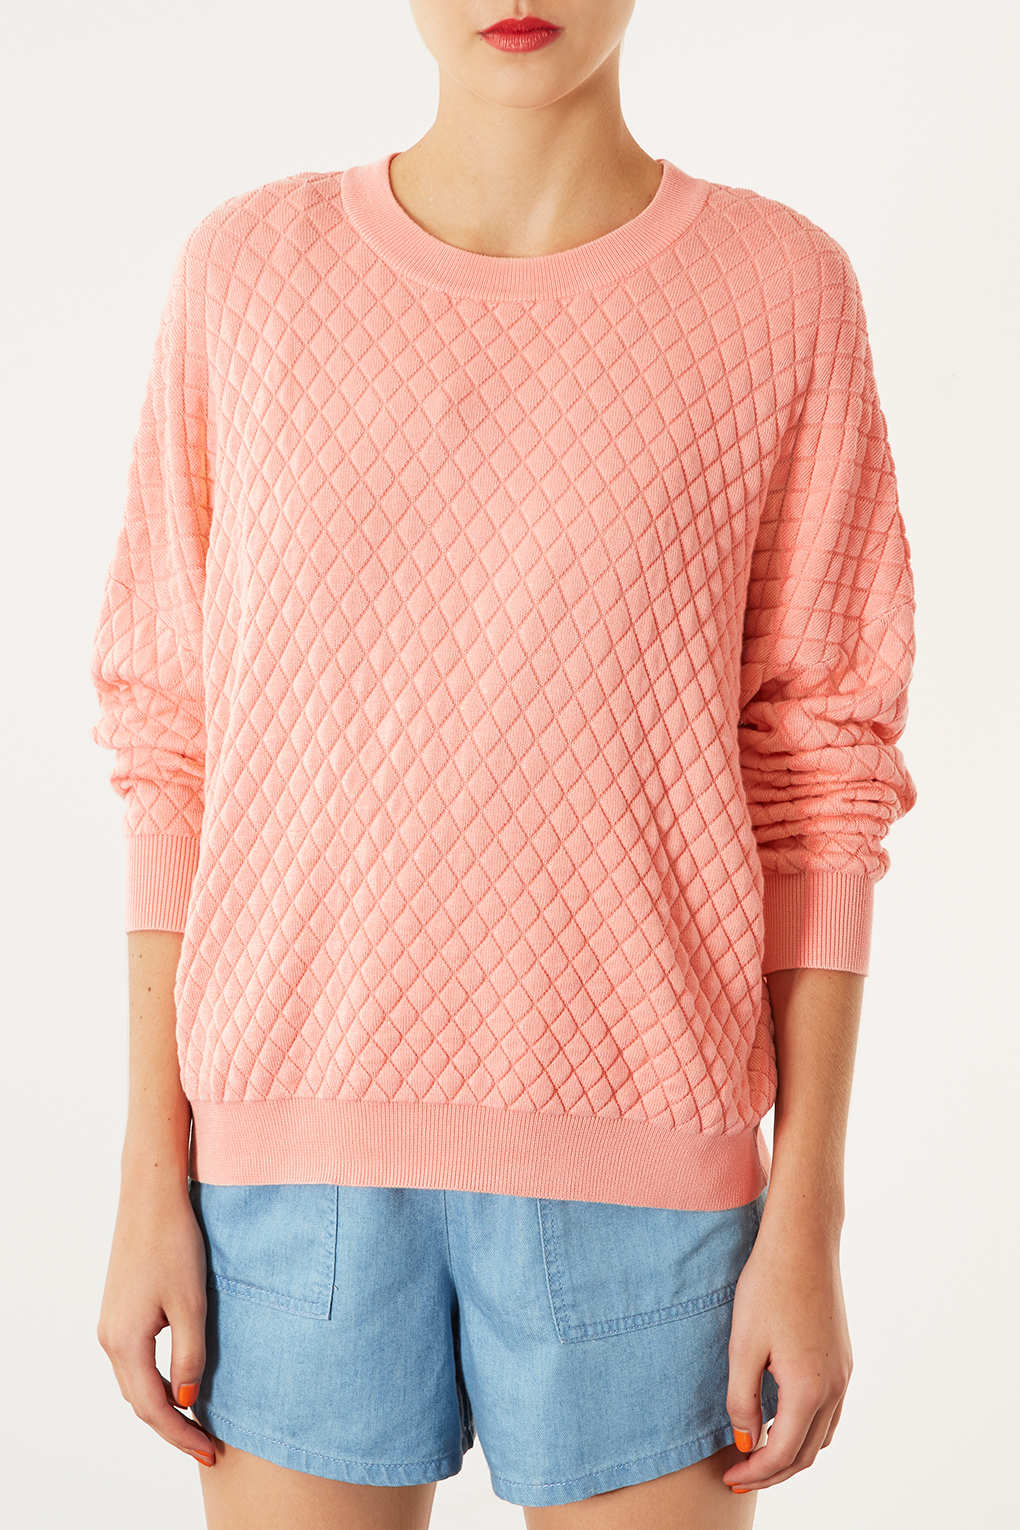 Topshop Knitted Quilted Sweater Jumper in Pink | Lyst